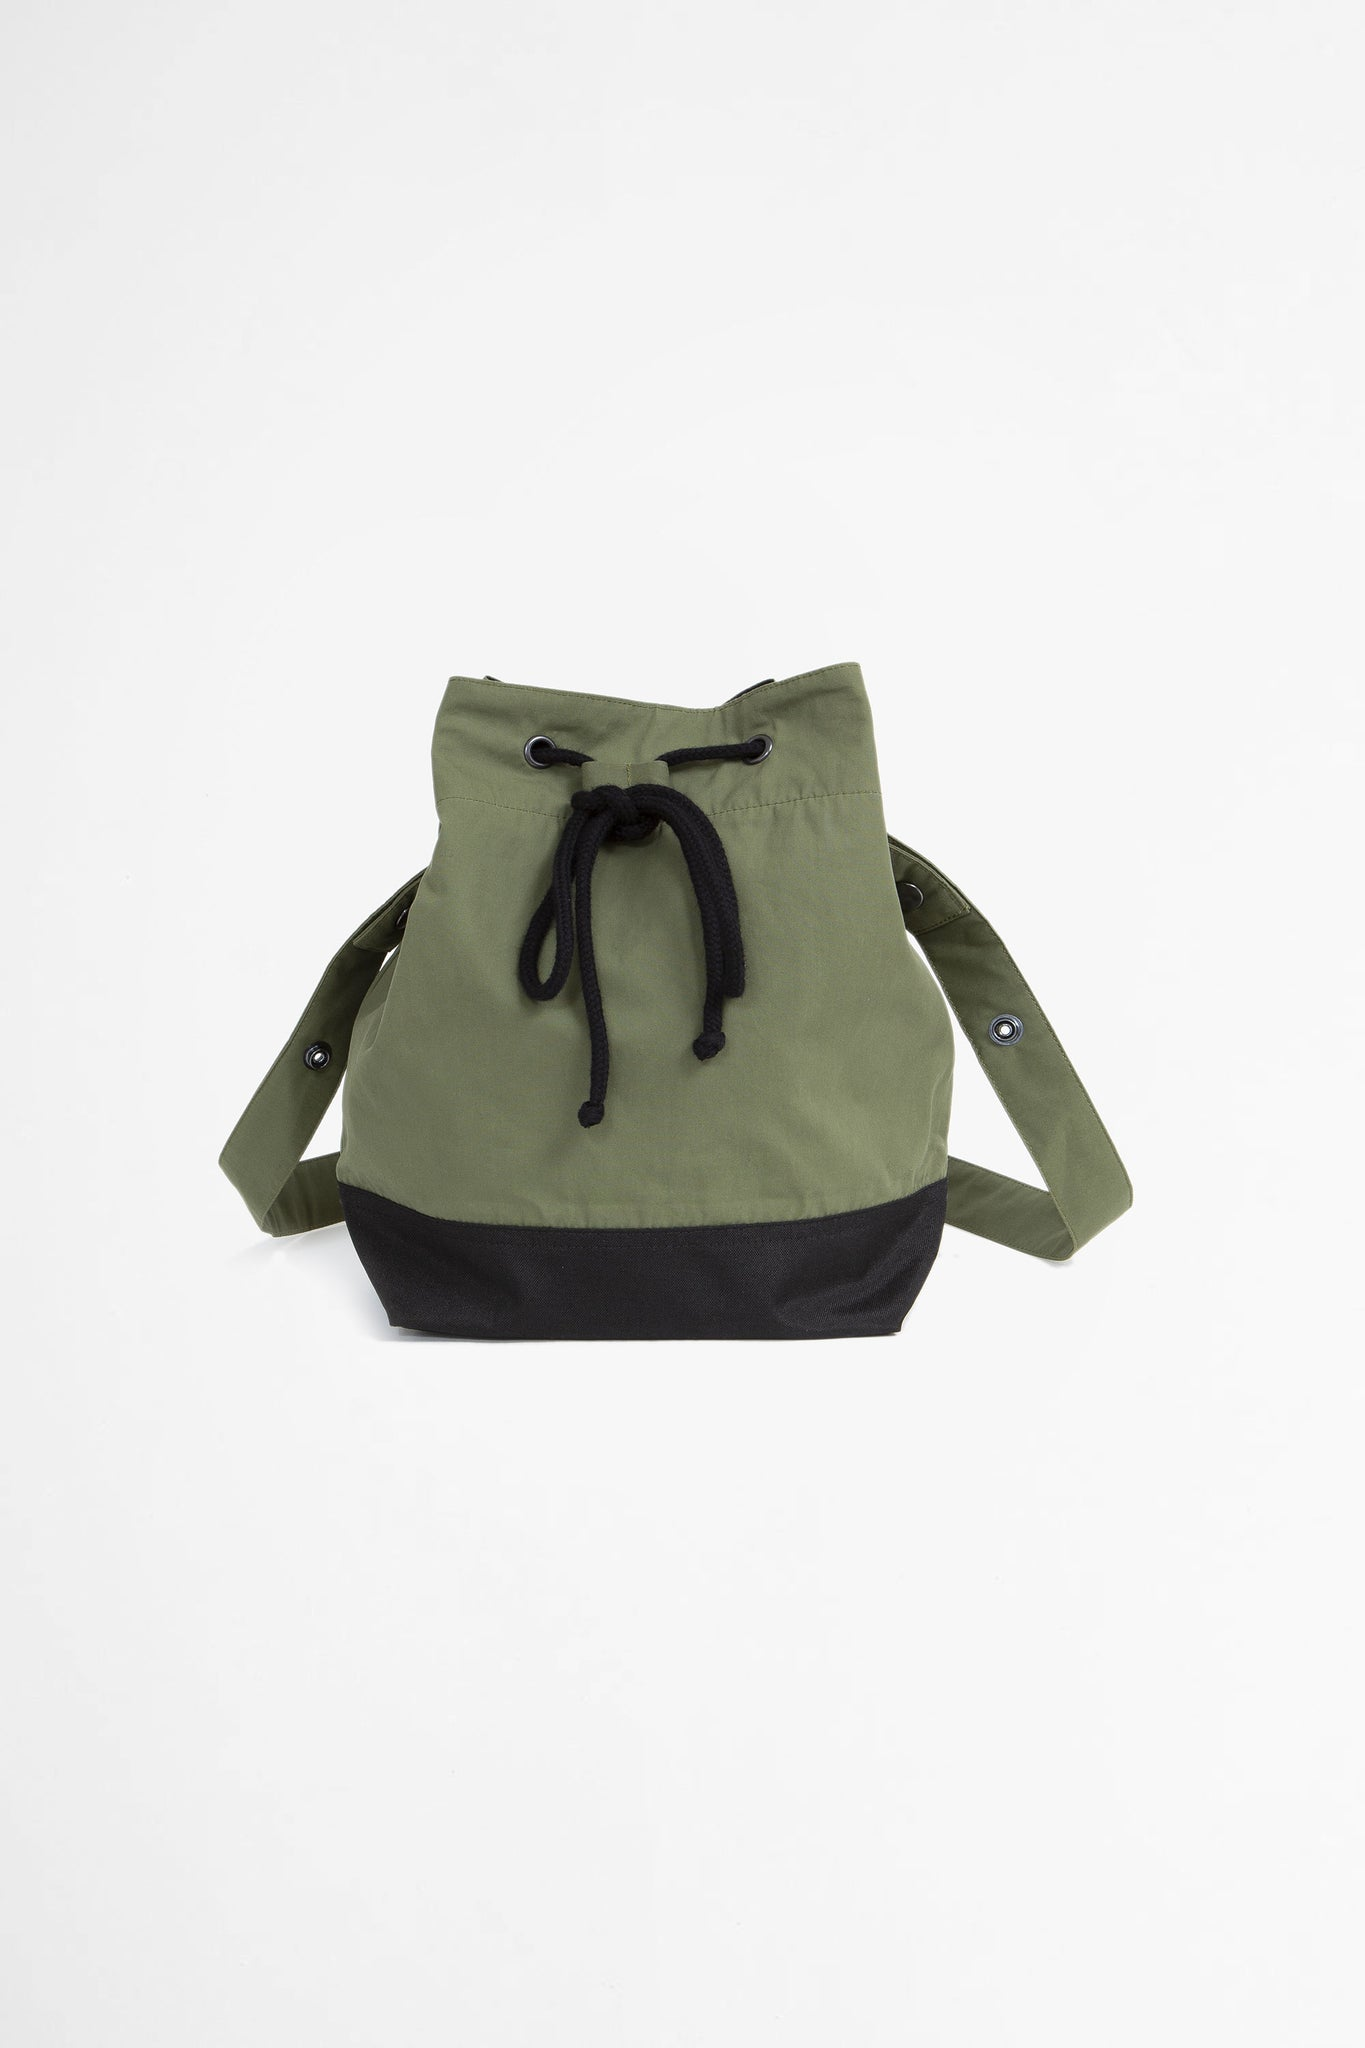 Soft bucket bag proofed plainweave cotton sage